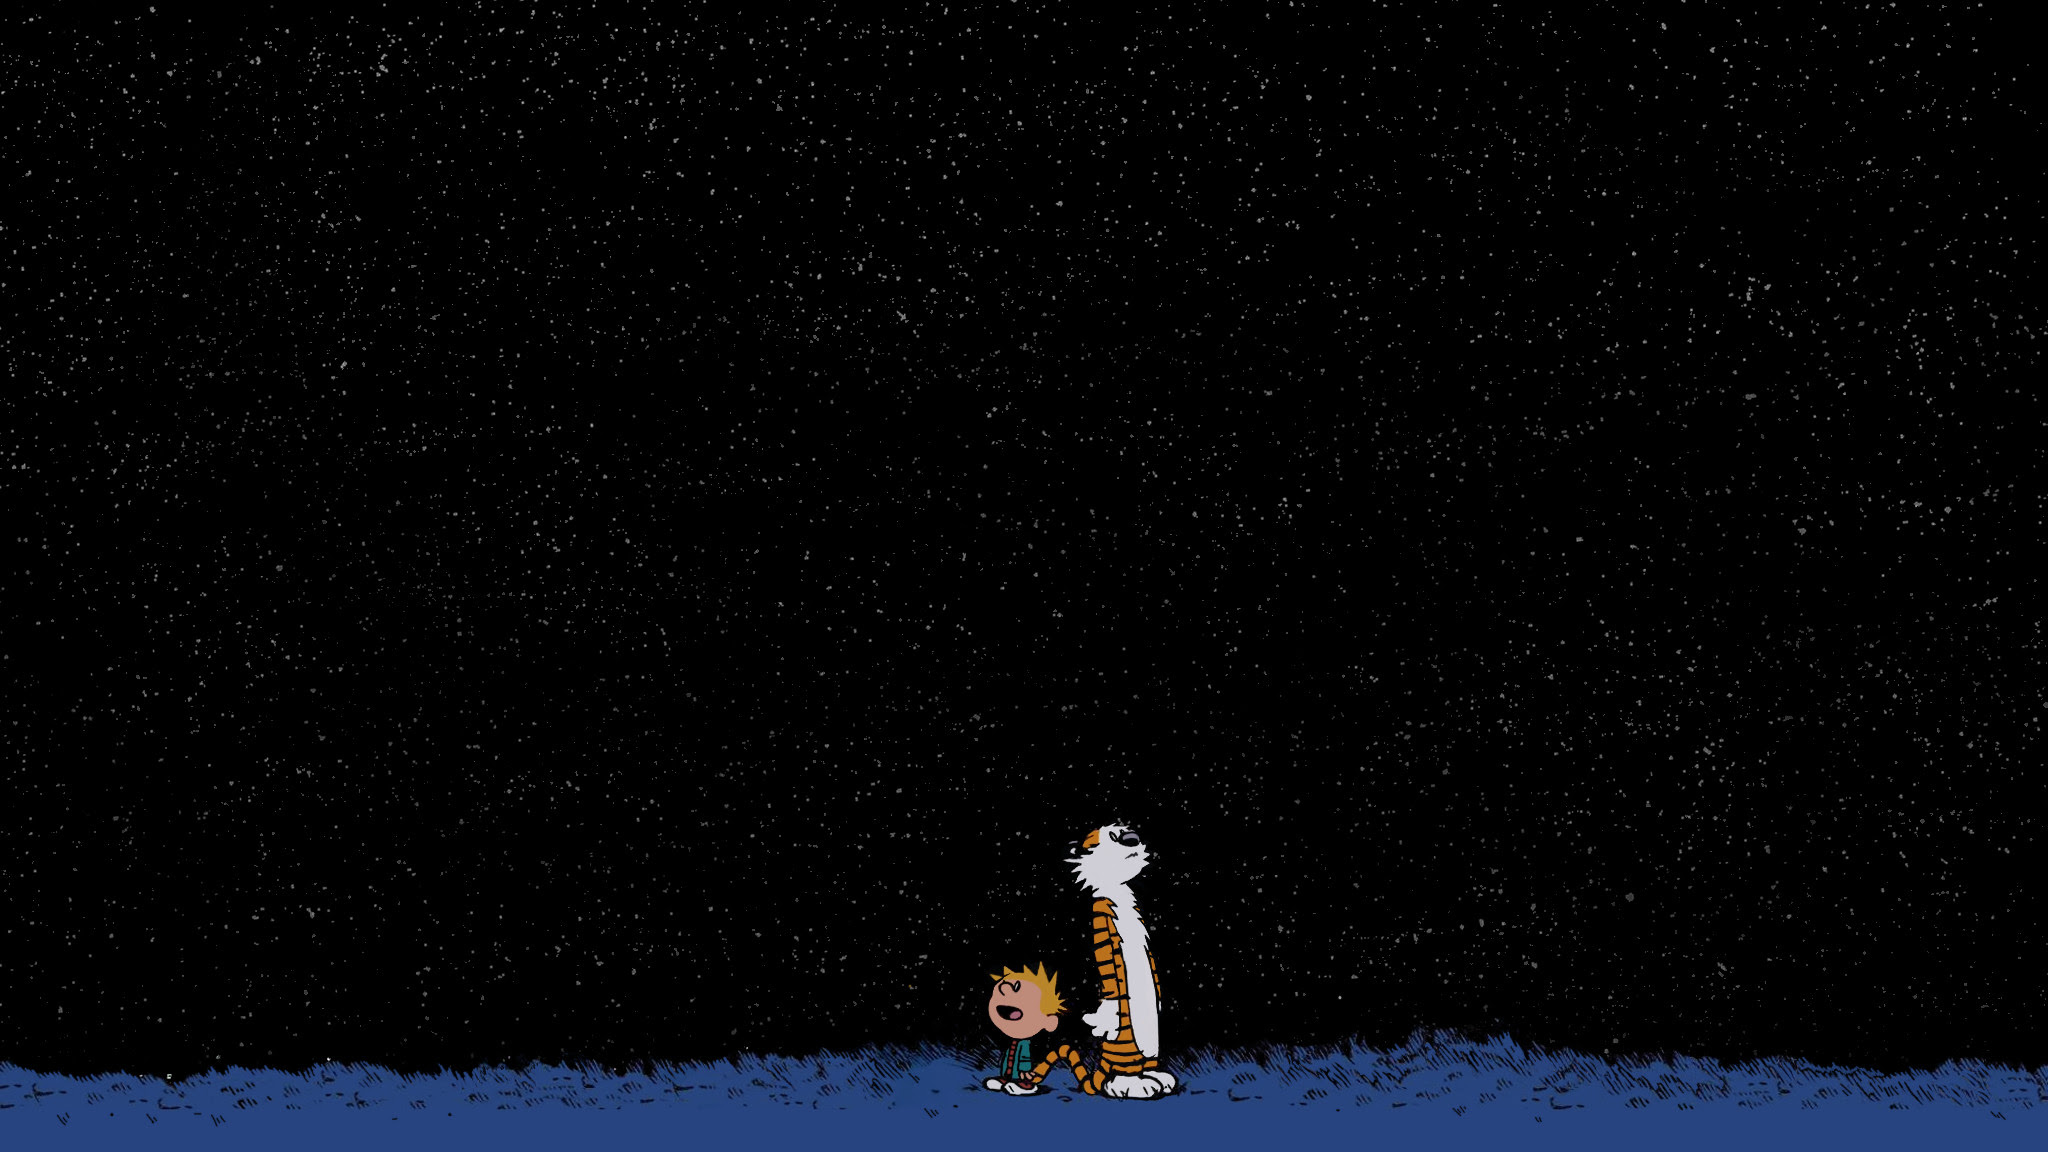 Calvin And Hobbes Stars Wallpaper 69 Images